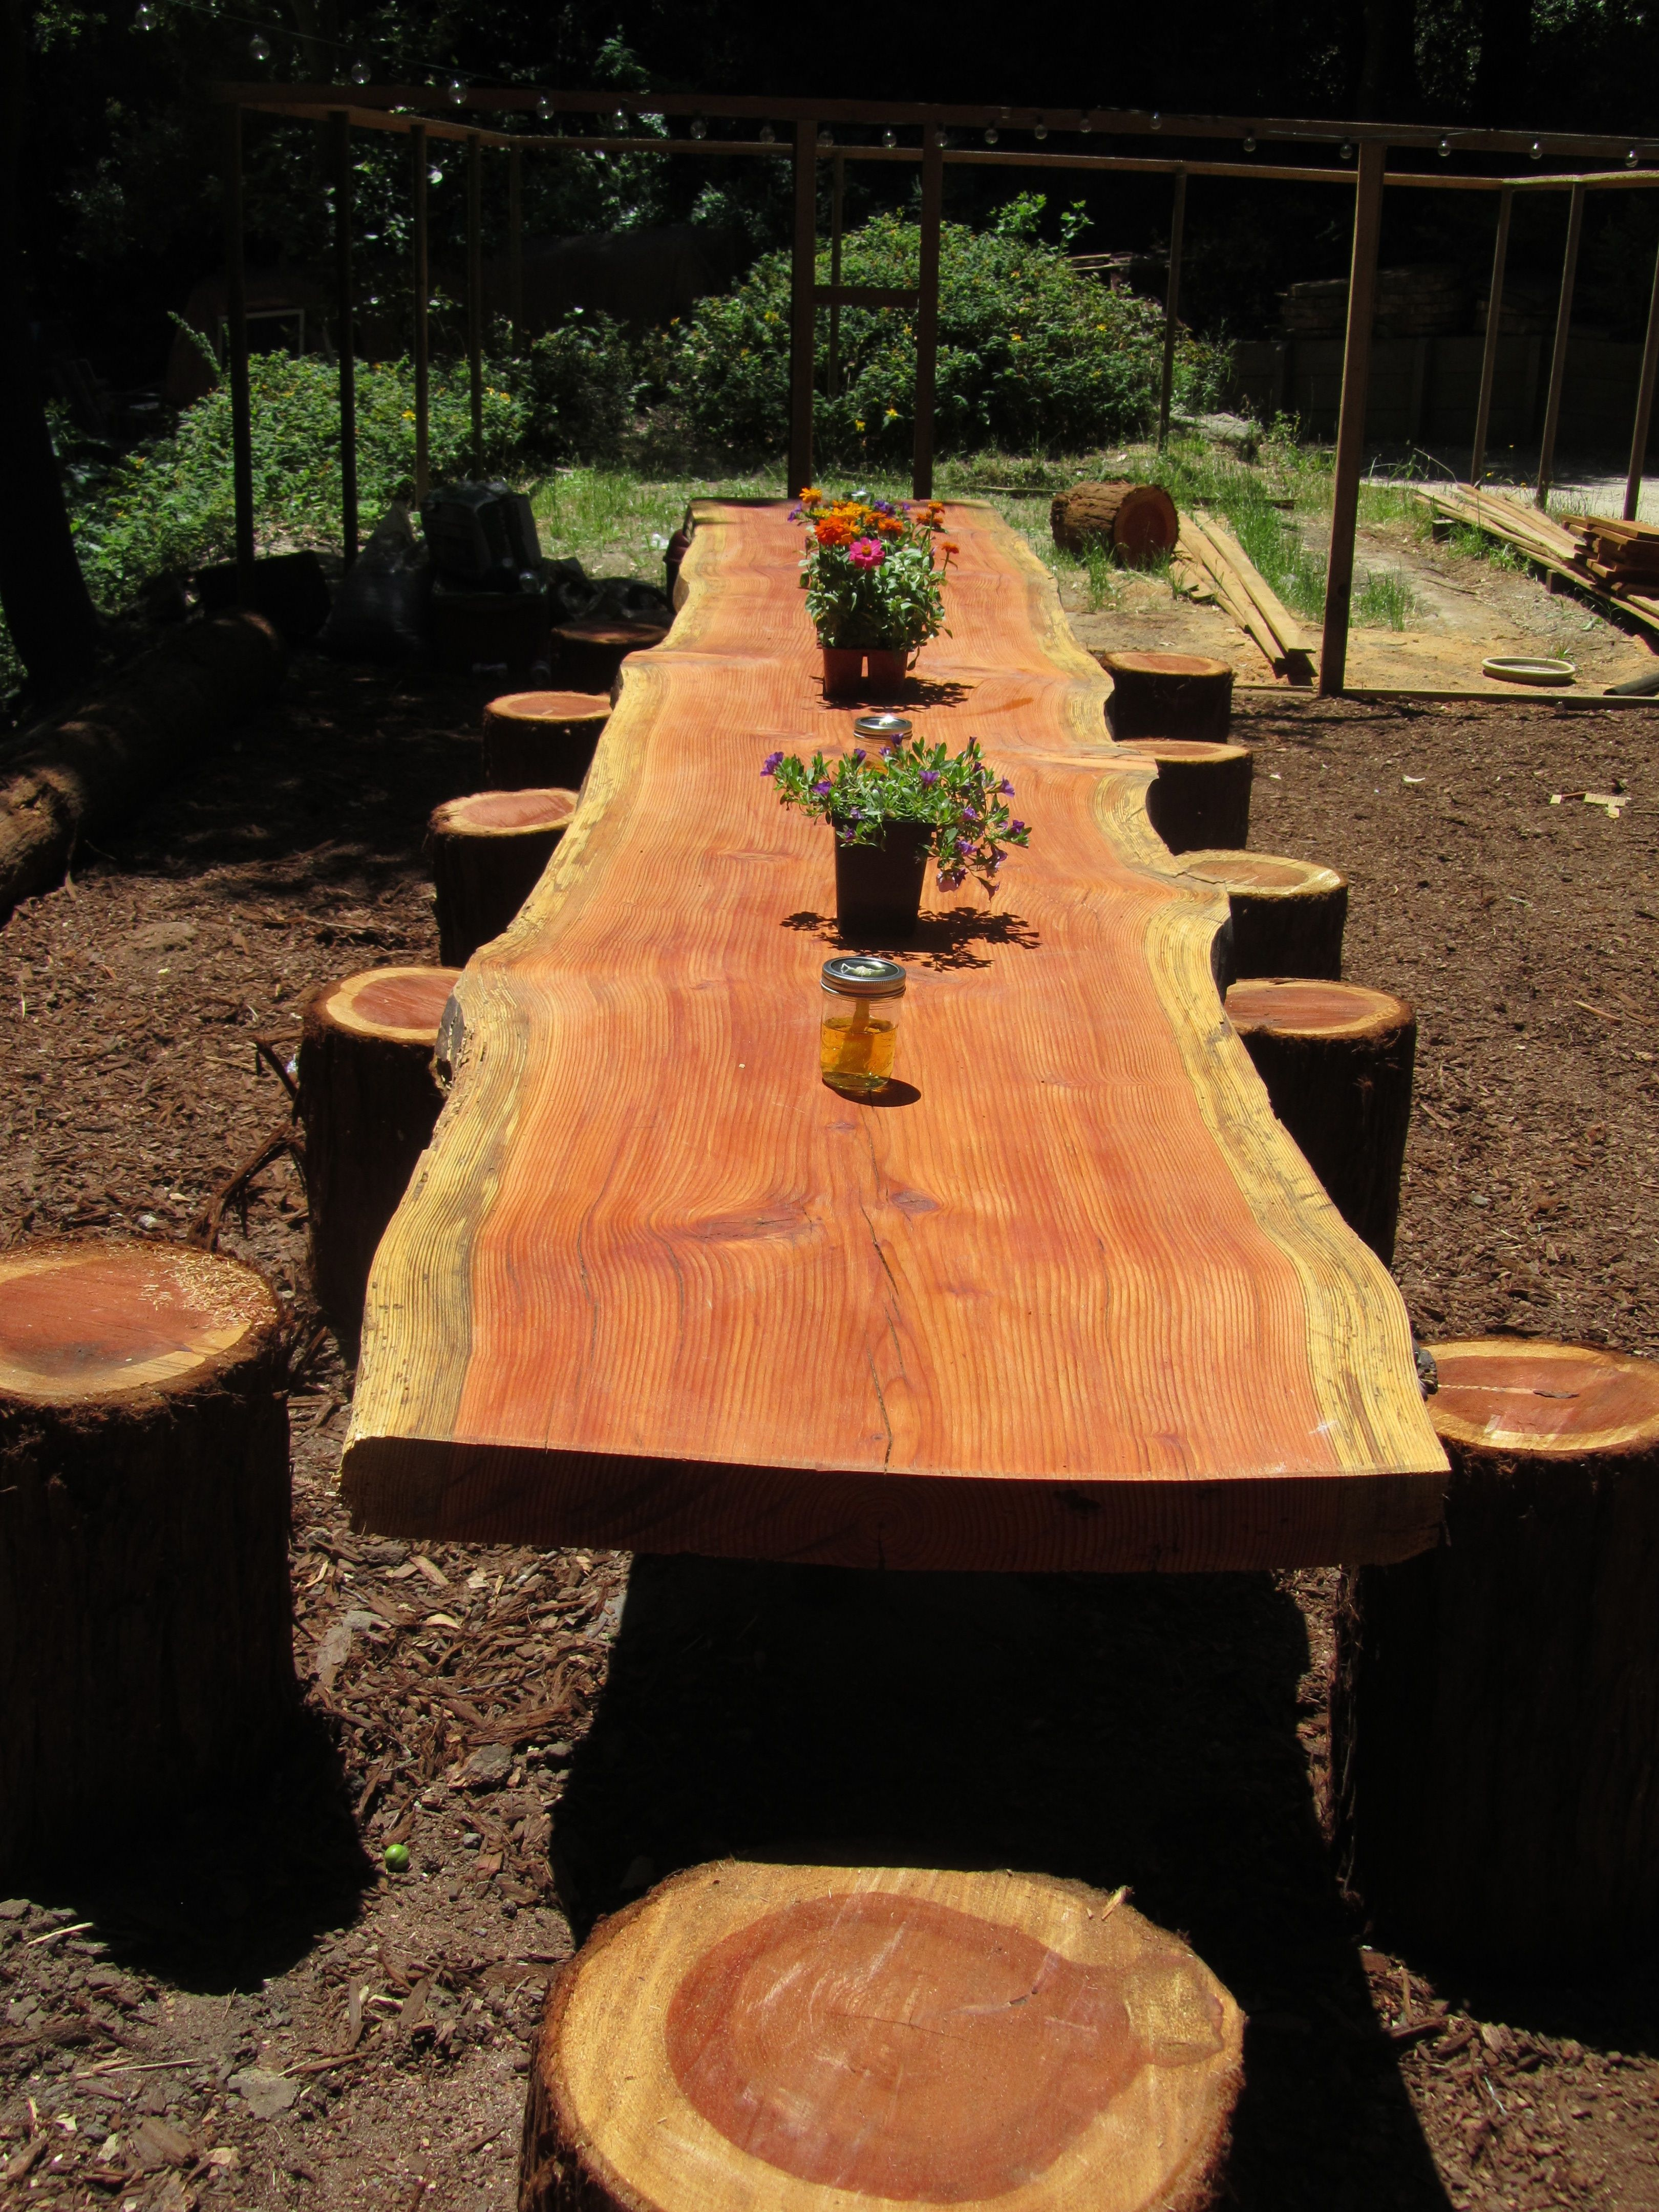 Pinterest Shabby Chic Garten 15 Diy Wood Log Ideas For Your Garden Decor Things I Want